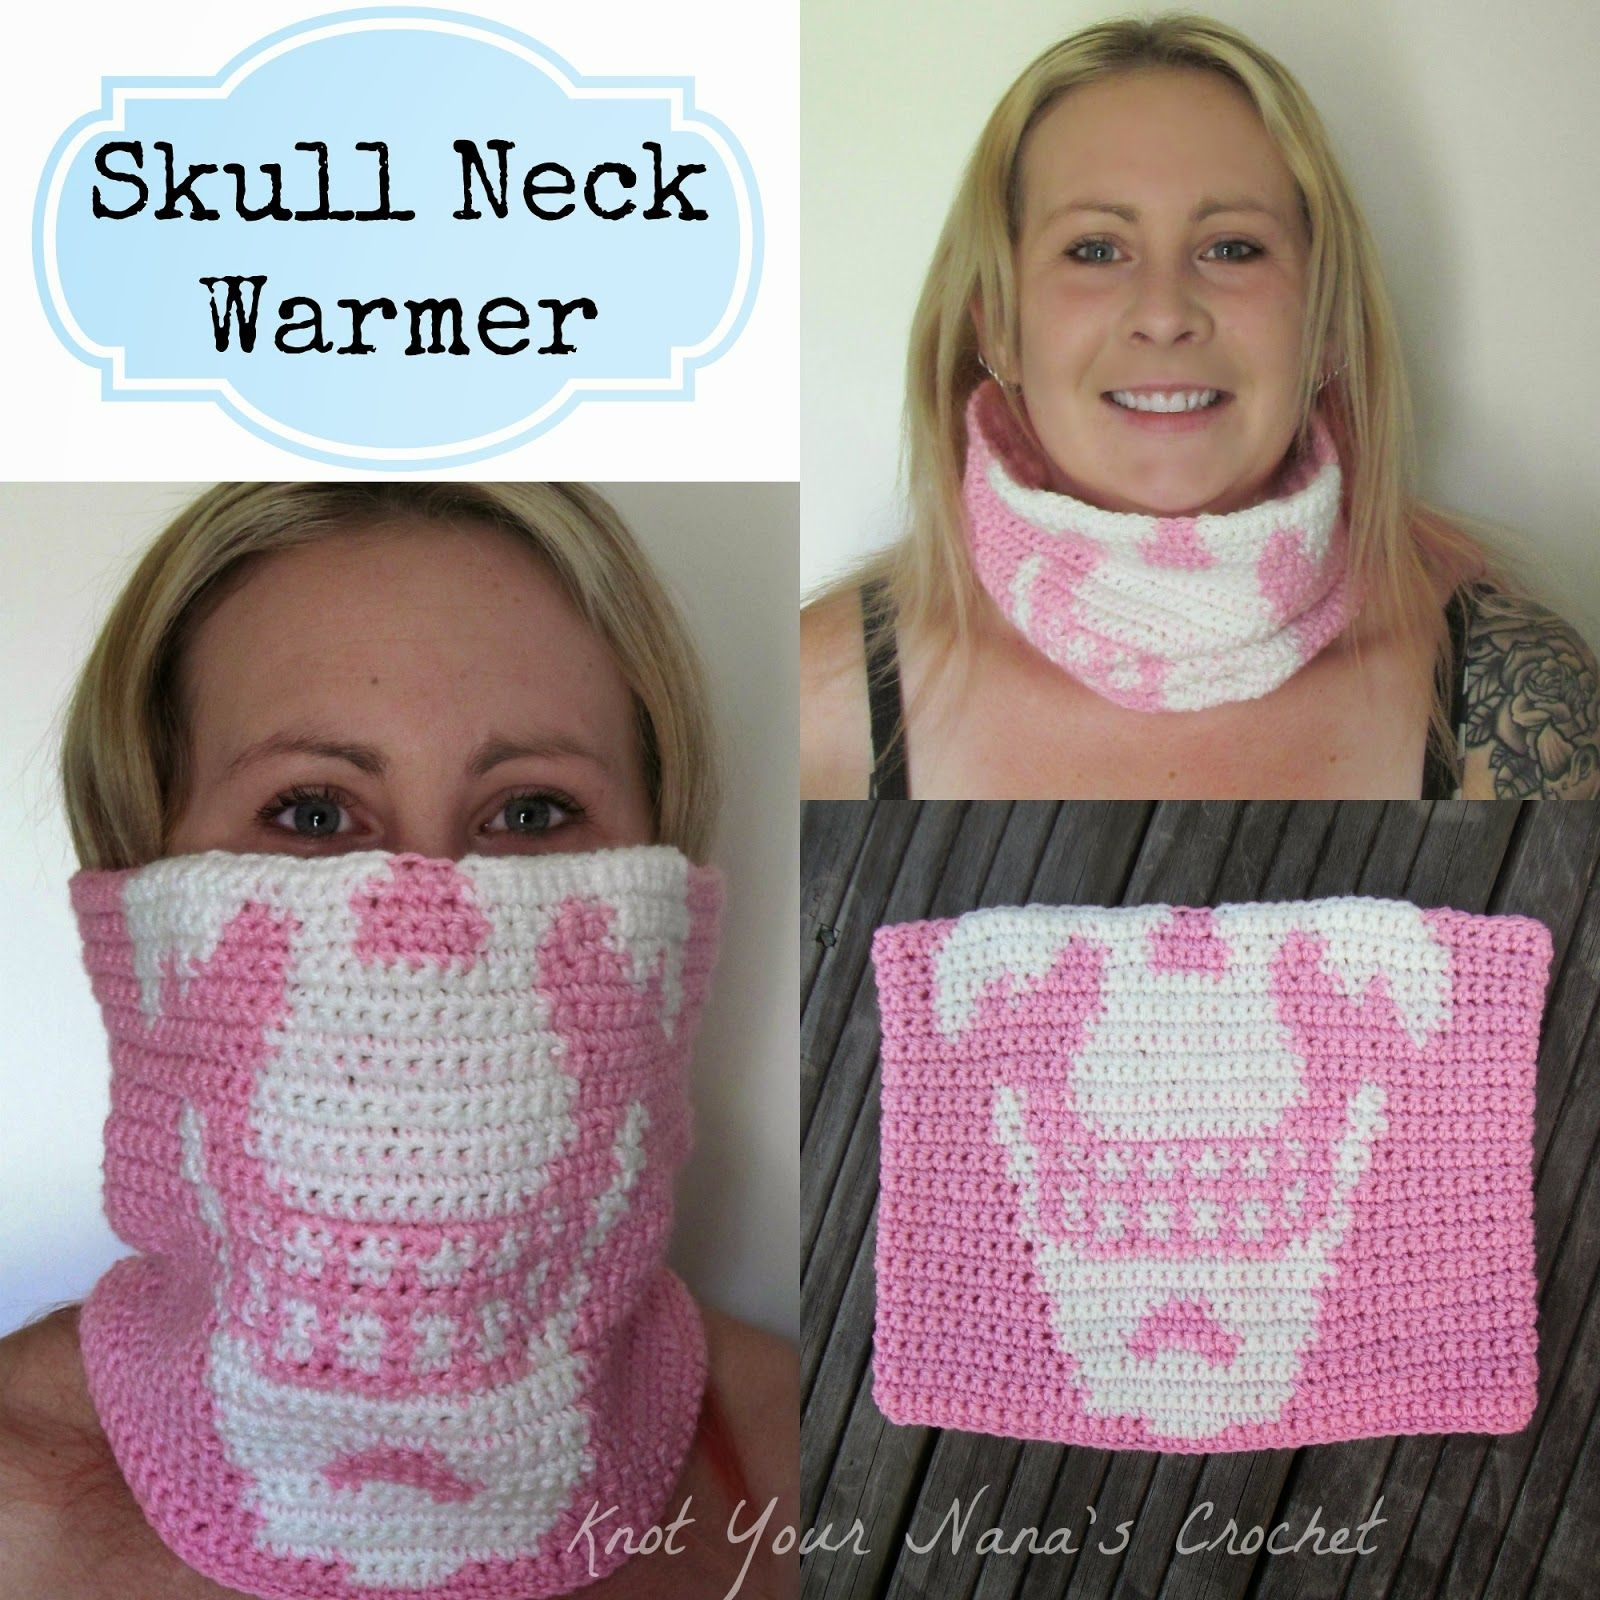 Free crochet pattern for a crochet skull neck warmer by Knot Your ...